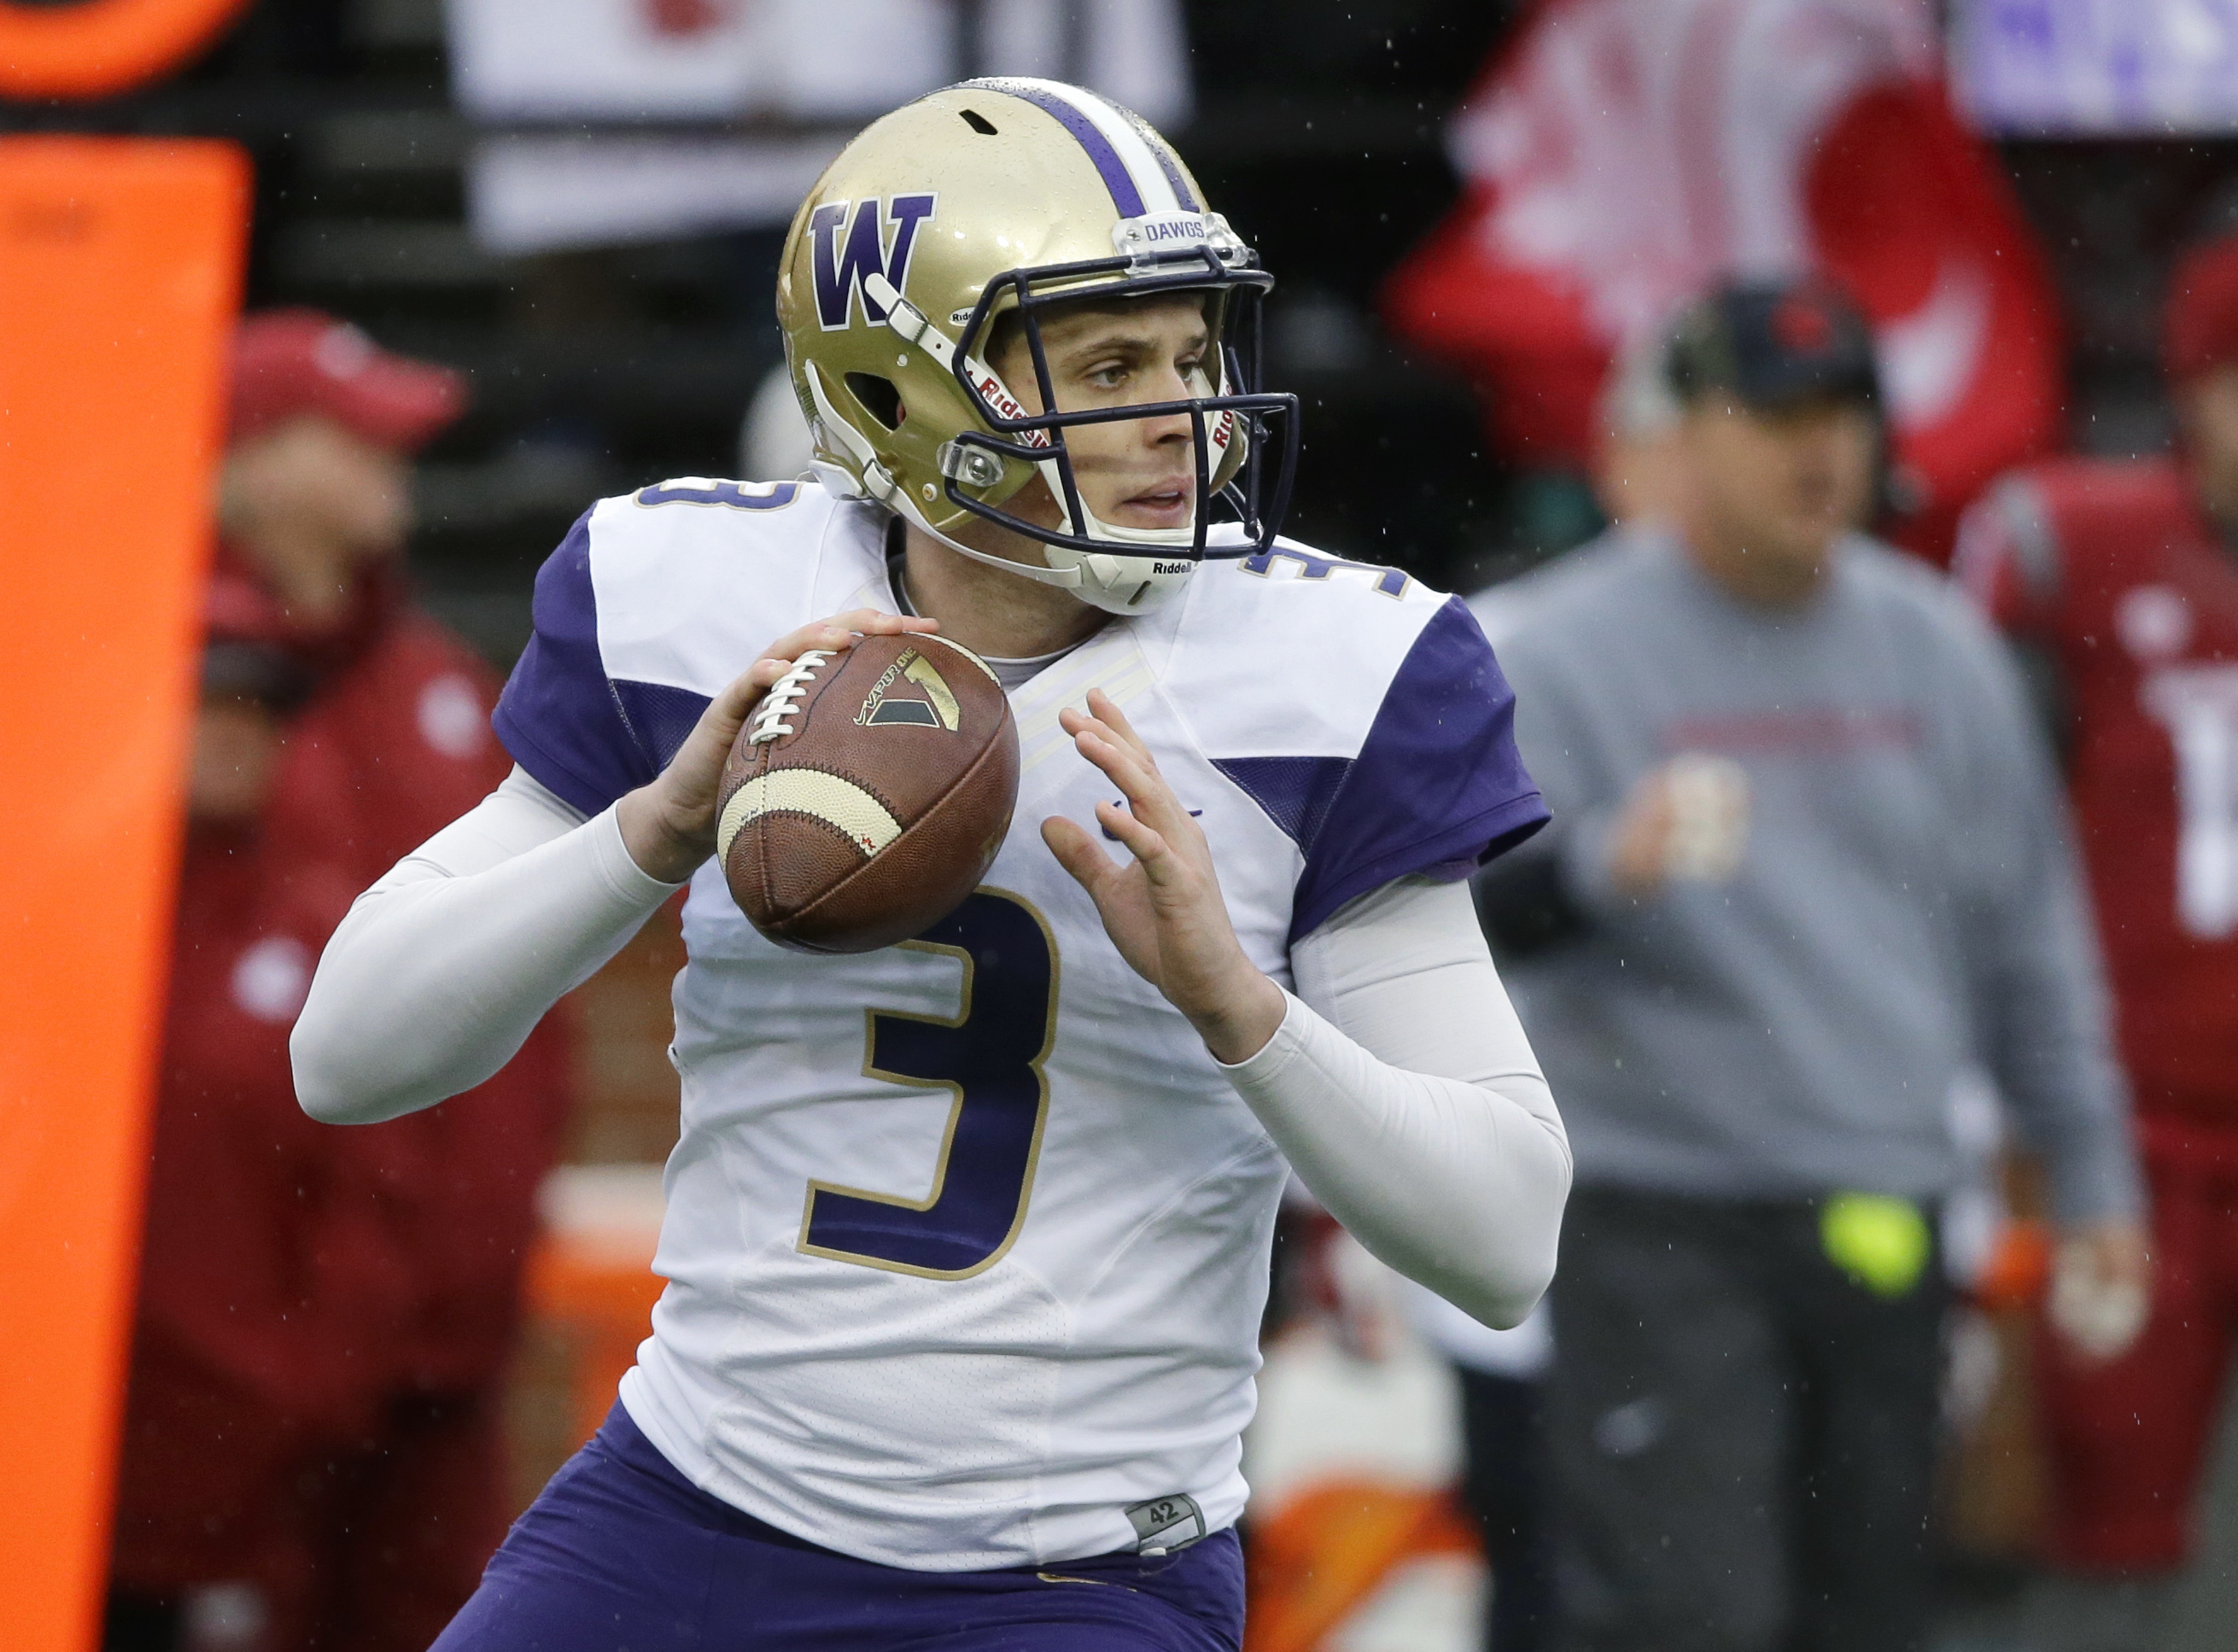 Washington quarterback Jake Browning passes against Washington State in the first half of an NCAA college football game, Friday, Nov. 25, 2016, in Pullman, Wash. (AP Photo/Ted S. Warren)